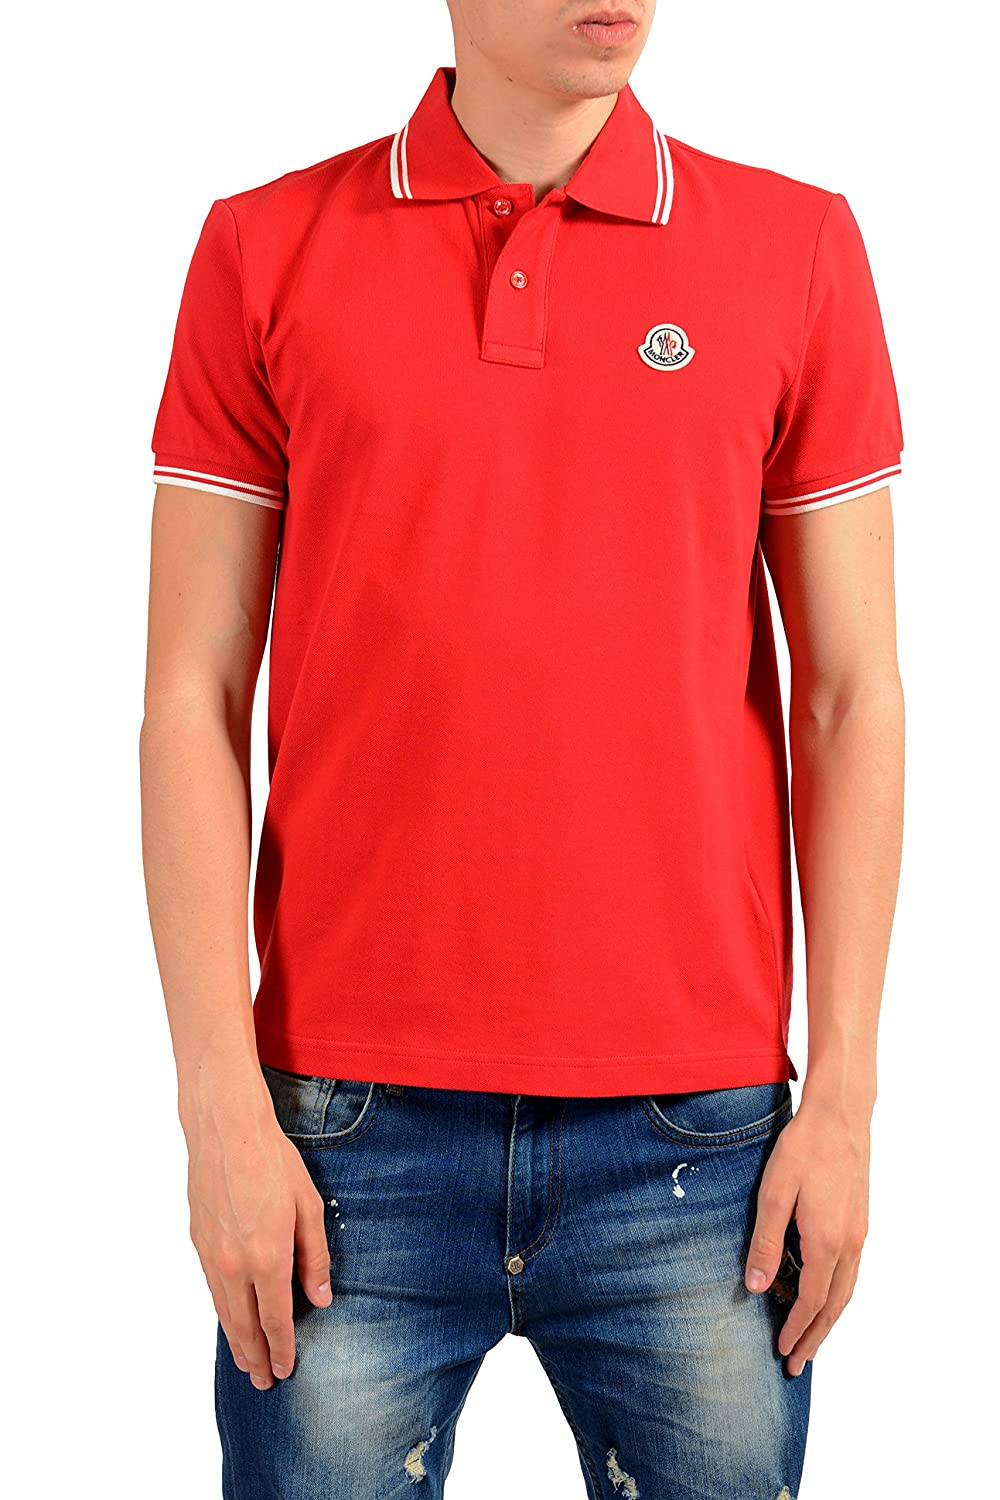 Moncler Mens Red Short Sleeve Polo Shirt Size Us Xl It 54 At Amazon